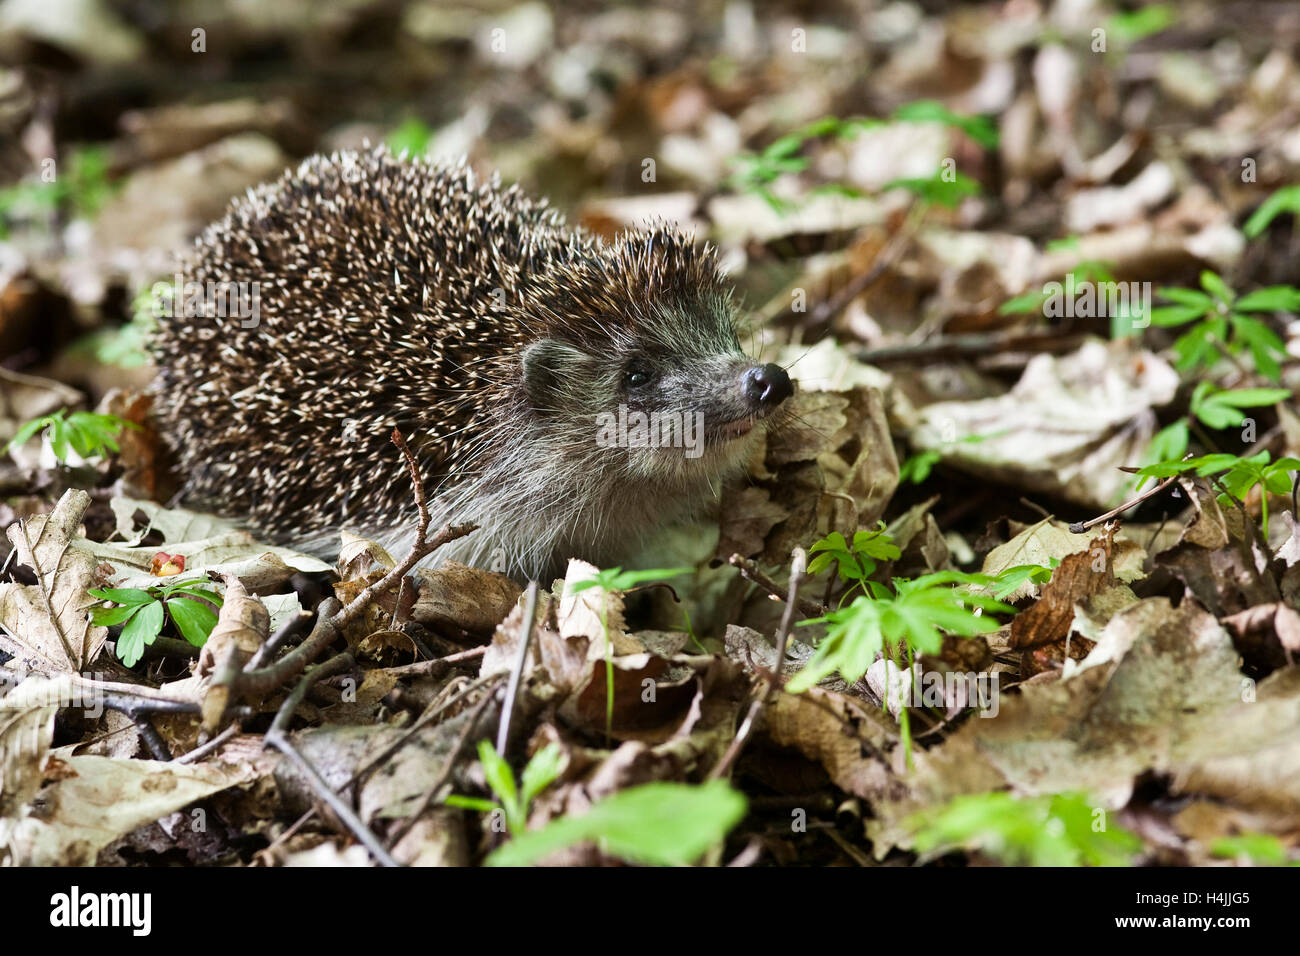 Hedgehog (Erinaceus europaeus) in a wood - Stock Image